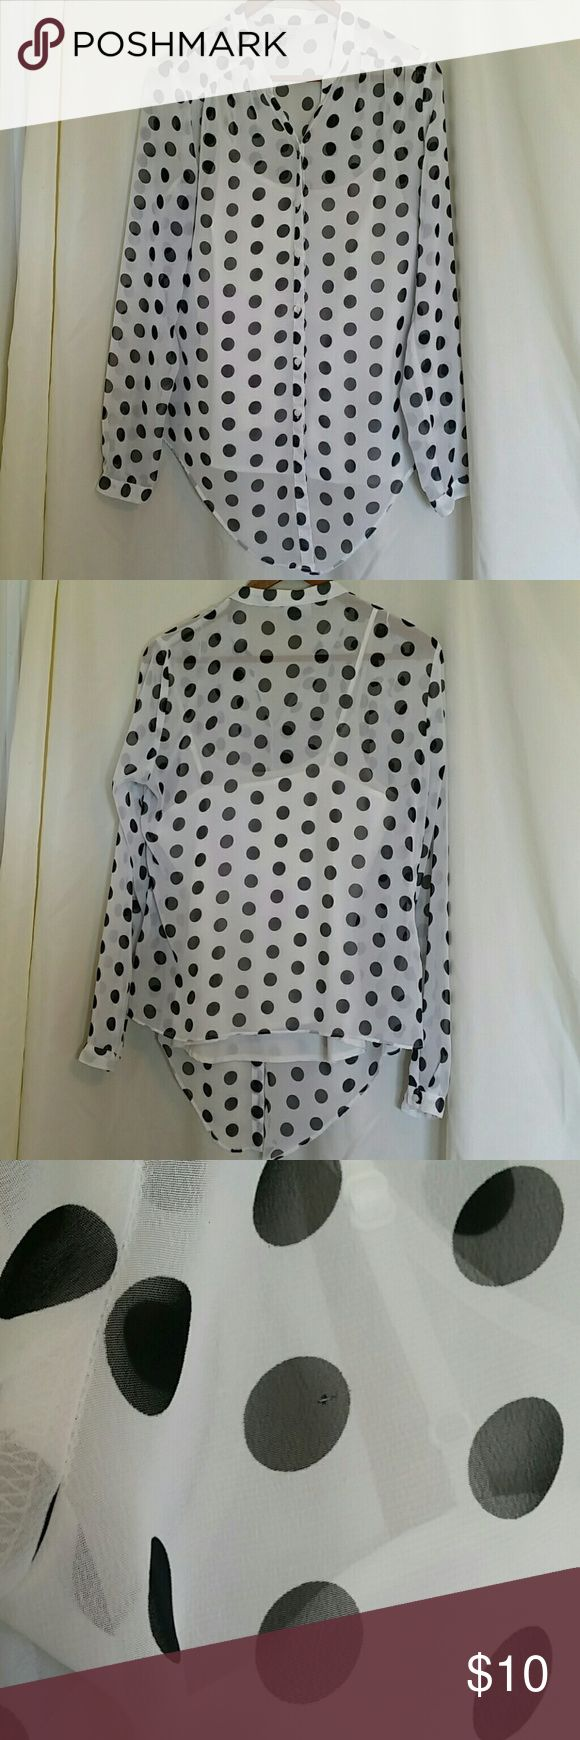 Sheer polka dot retro look long sleeve shirt Super cute retro looking sheer black and white button down blouse by Worthington. Comes with a separate ivory camisole for underneath.  Great condition but tiny pin sized hole on back shoulder (3rd photo) Worthington Tops Button Down Shirts